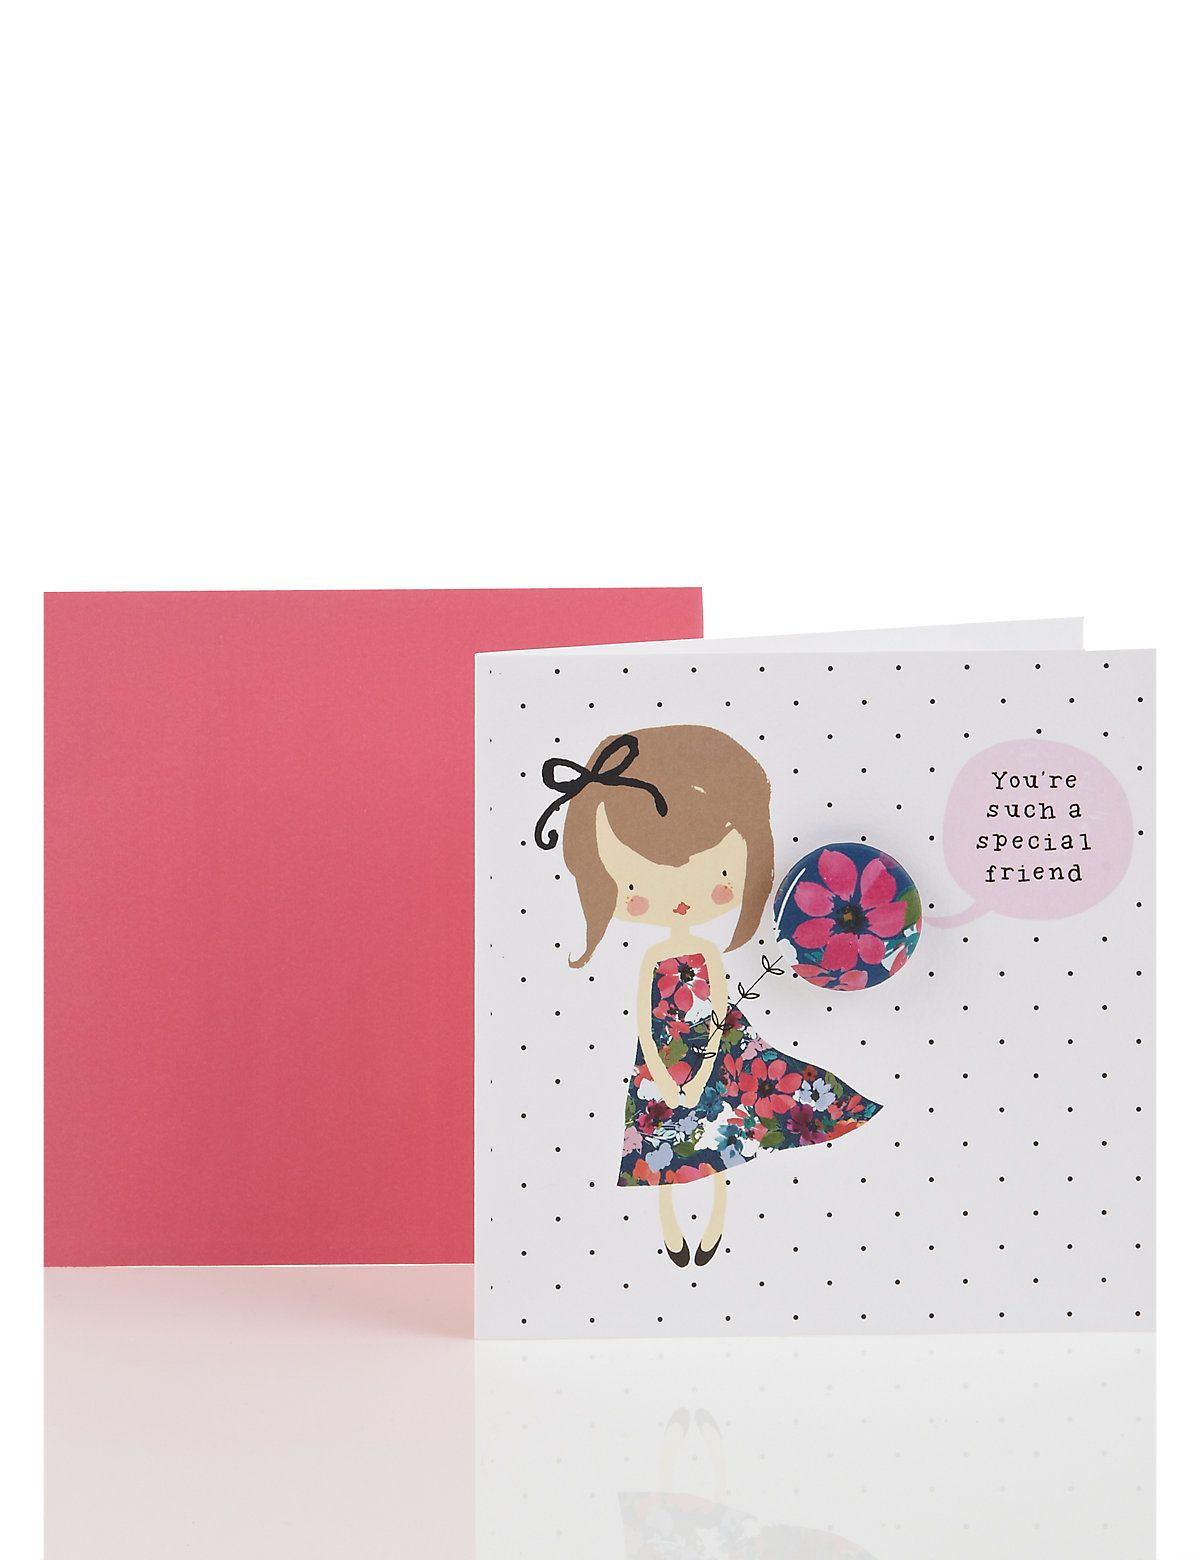 Cute girl special friend birthday card with badge ms